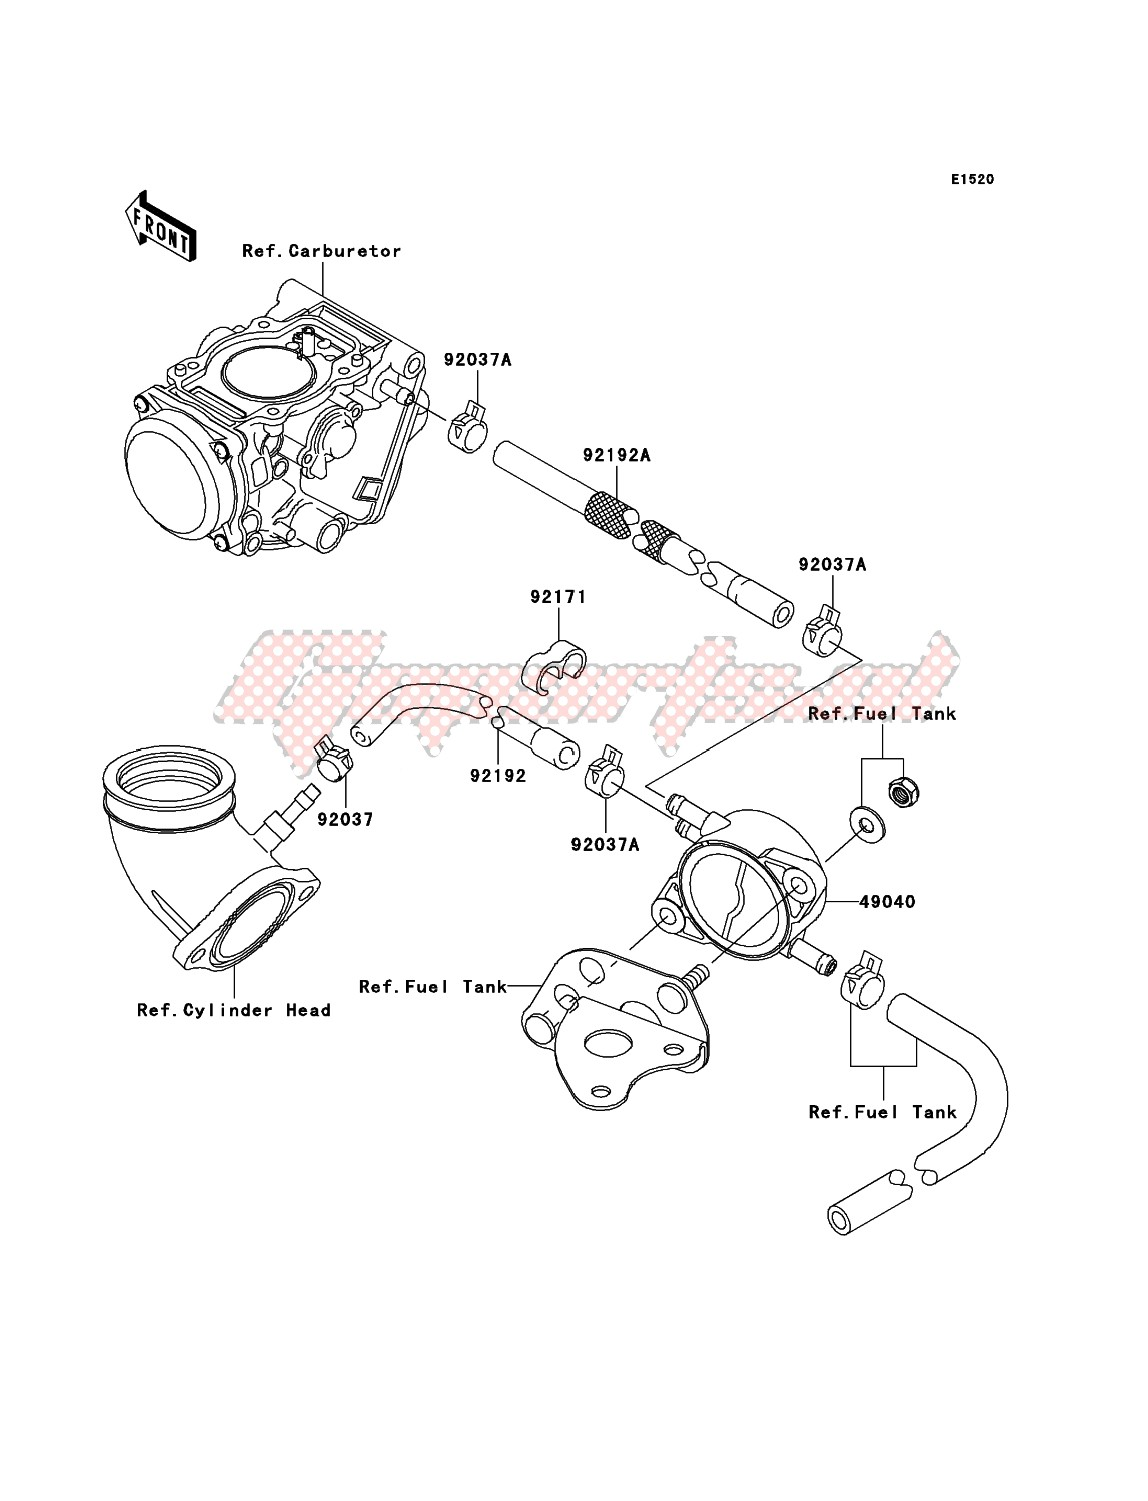 Engine-Fuel Pump